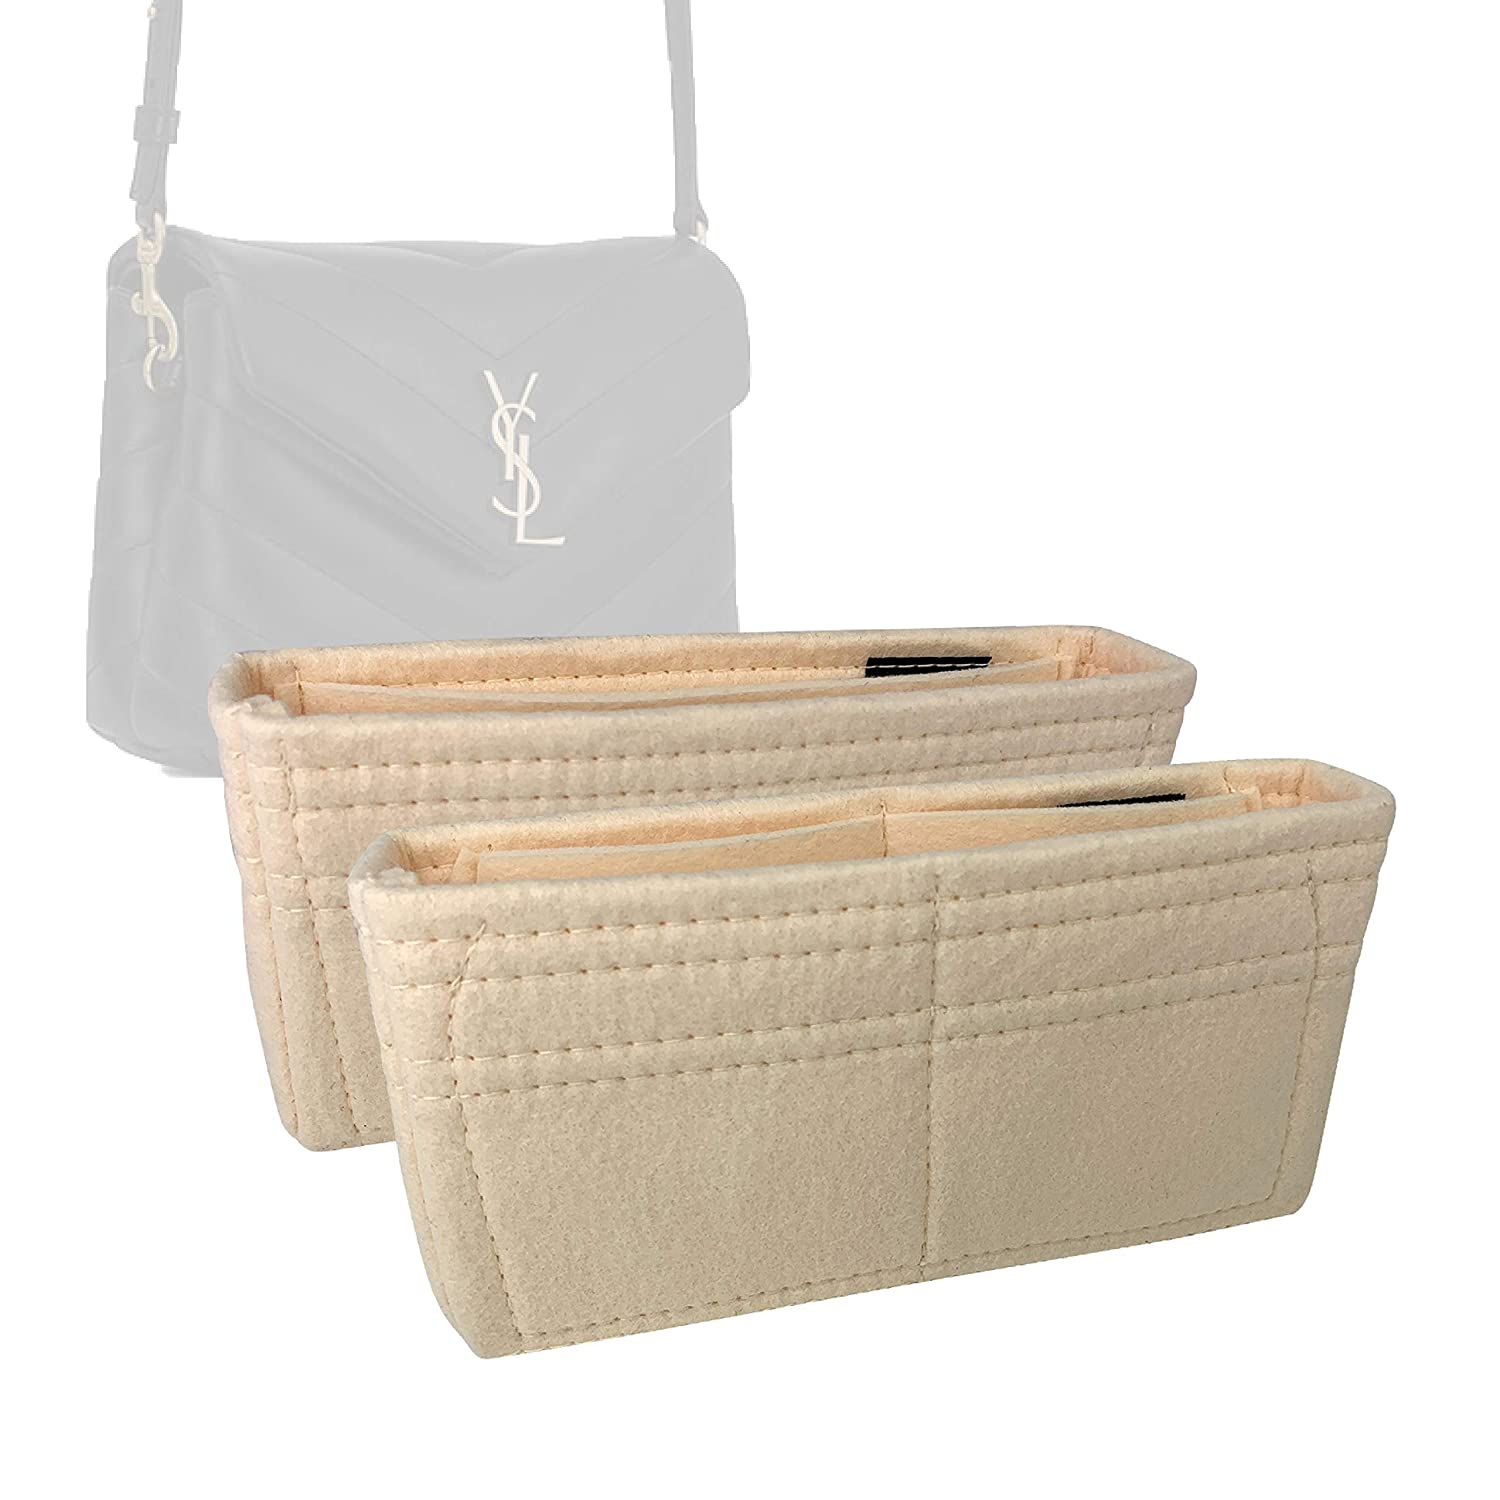 Challenge the lowest price of Japan ☆ Bag Organizer for LouLou Toy Set Felt Premium - Our shop most popular of 2 Hand